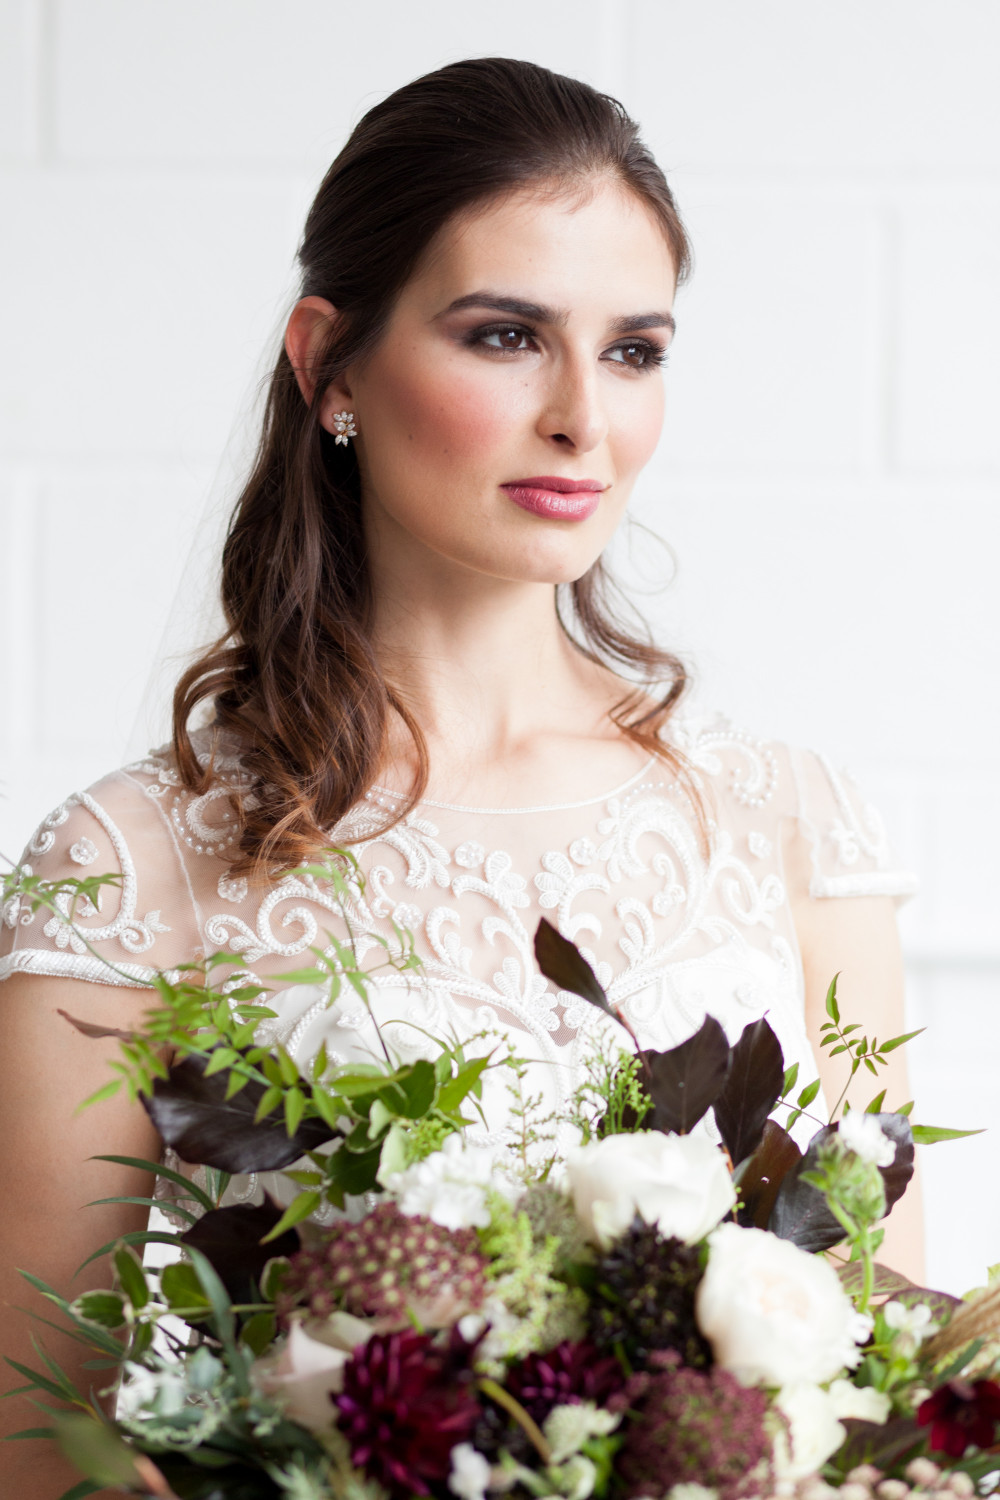 Styled shoot for Bloved Blog.  Hair & Makeup by me. - Make Me Bridal Artist: Mari Chase Makeup & Hair. Photography by: Helen Warner . #glamorous